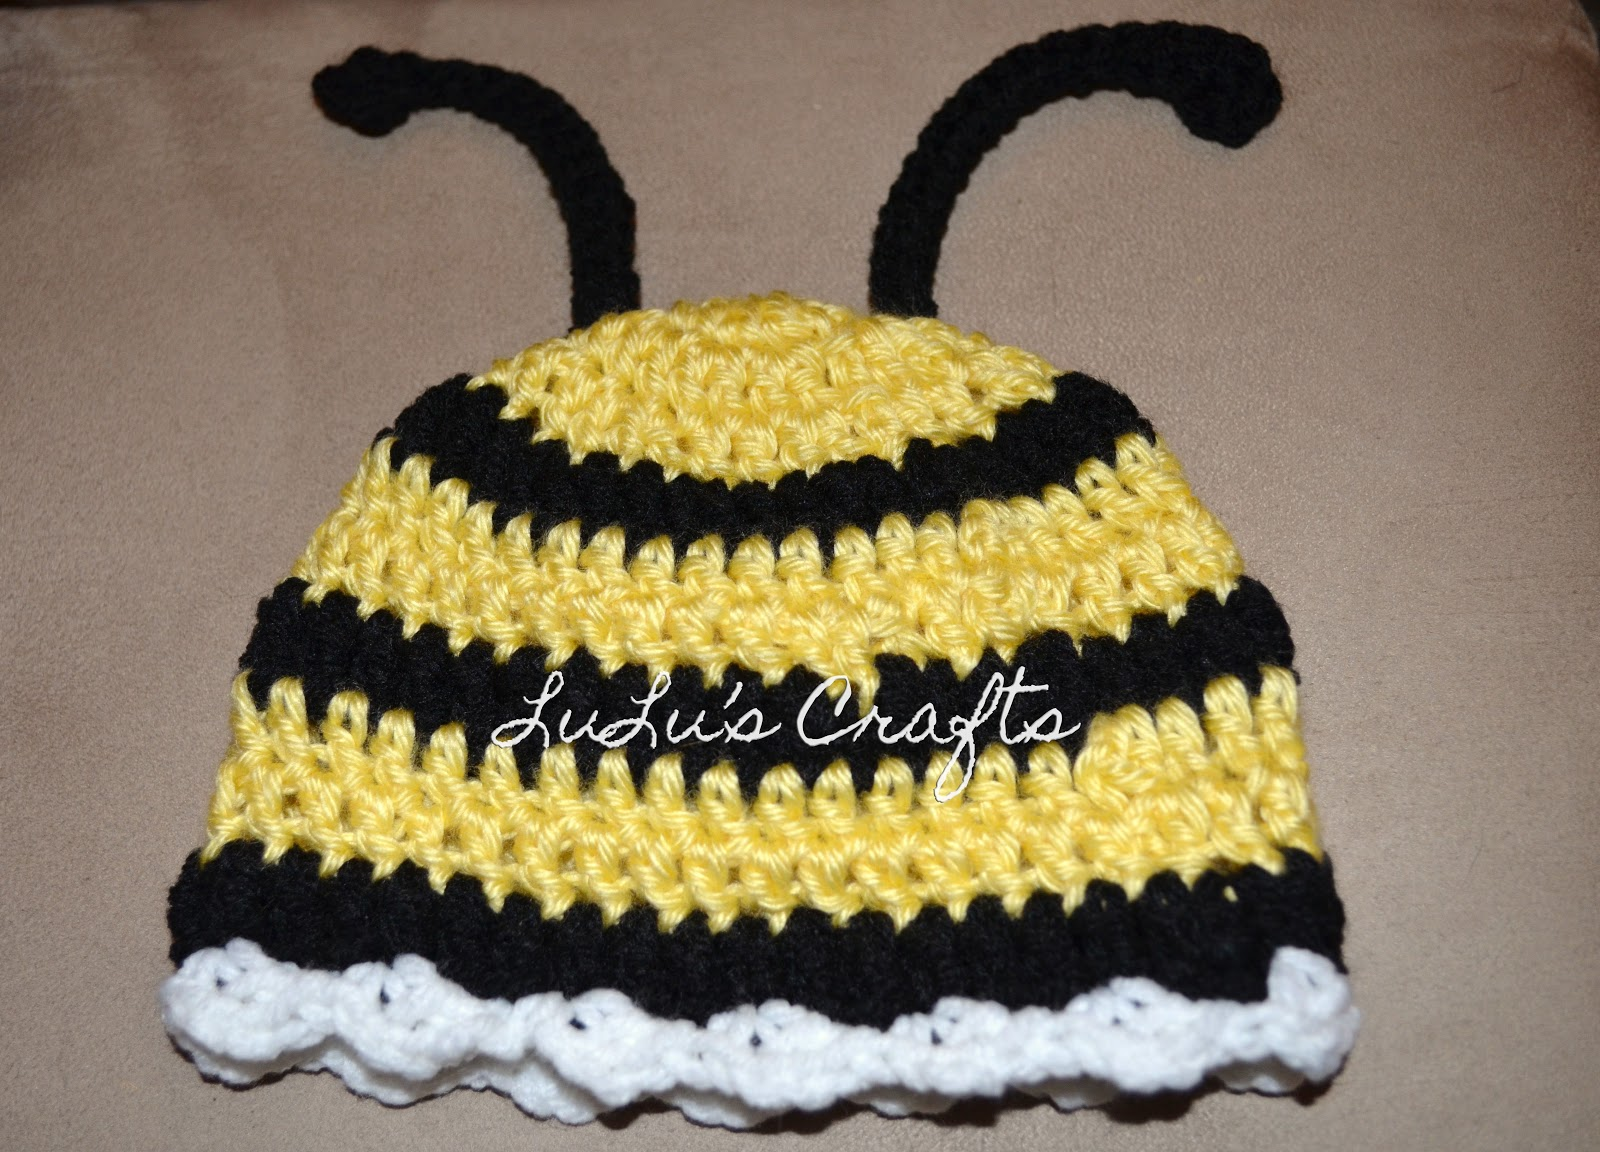 Free Crochet Patterns Yarn Bee : 26 Beautiful Crochet Bee Patterns - Page 2 of 3